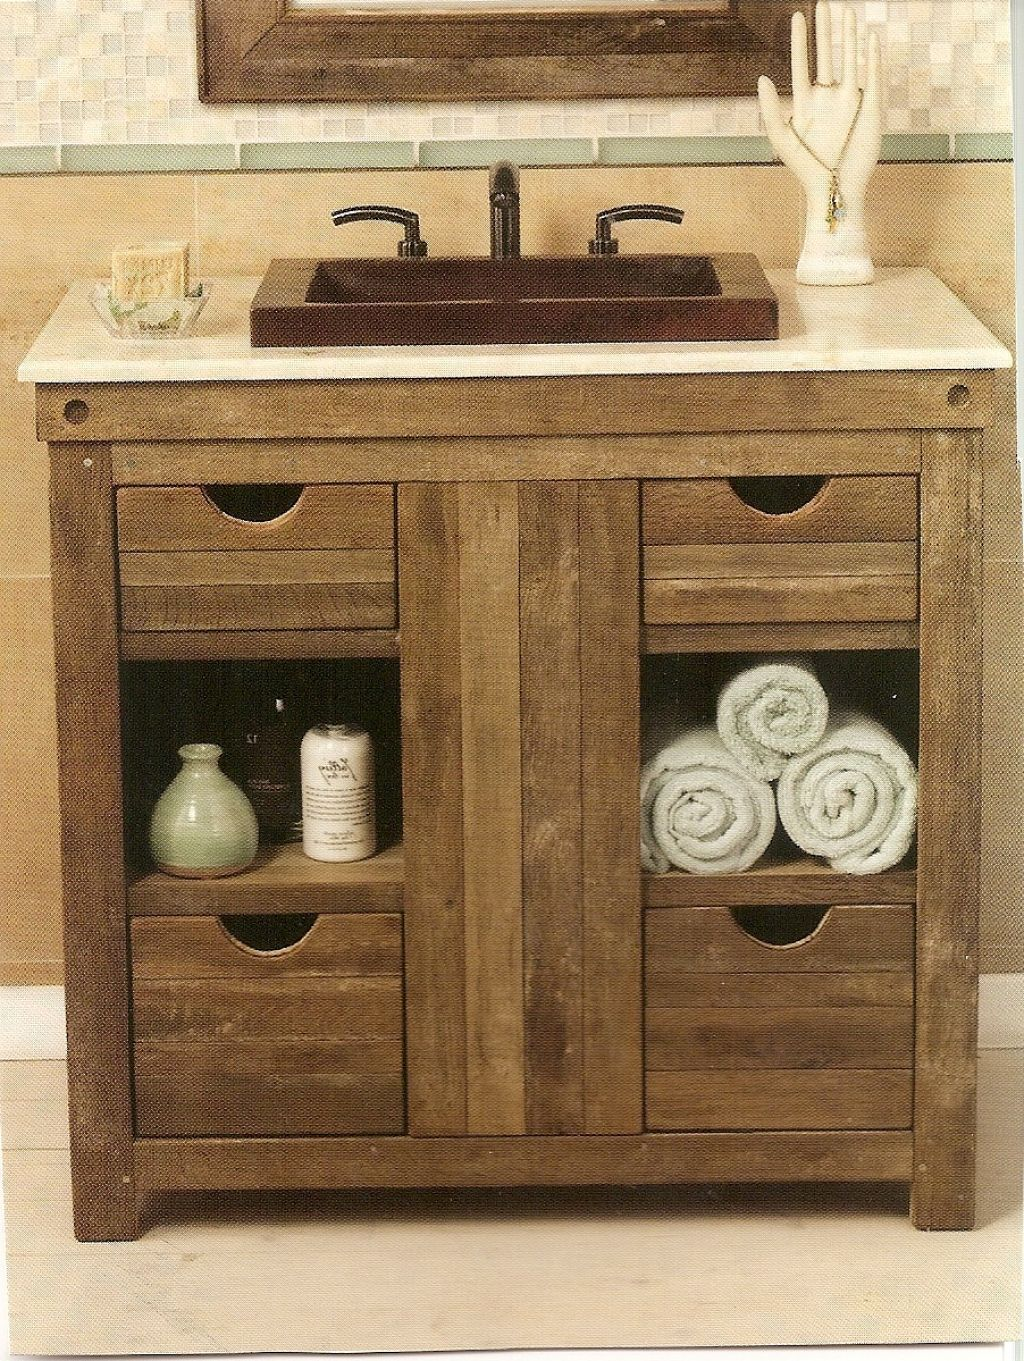 25 Incredible Vanities For Small Bathrooms With Examples Images Rustic Bathroom Designs Rustic Bathroom Vanities Small Bathroom Vanities